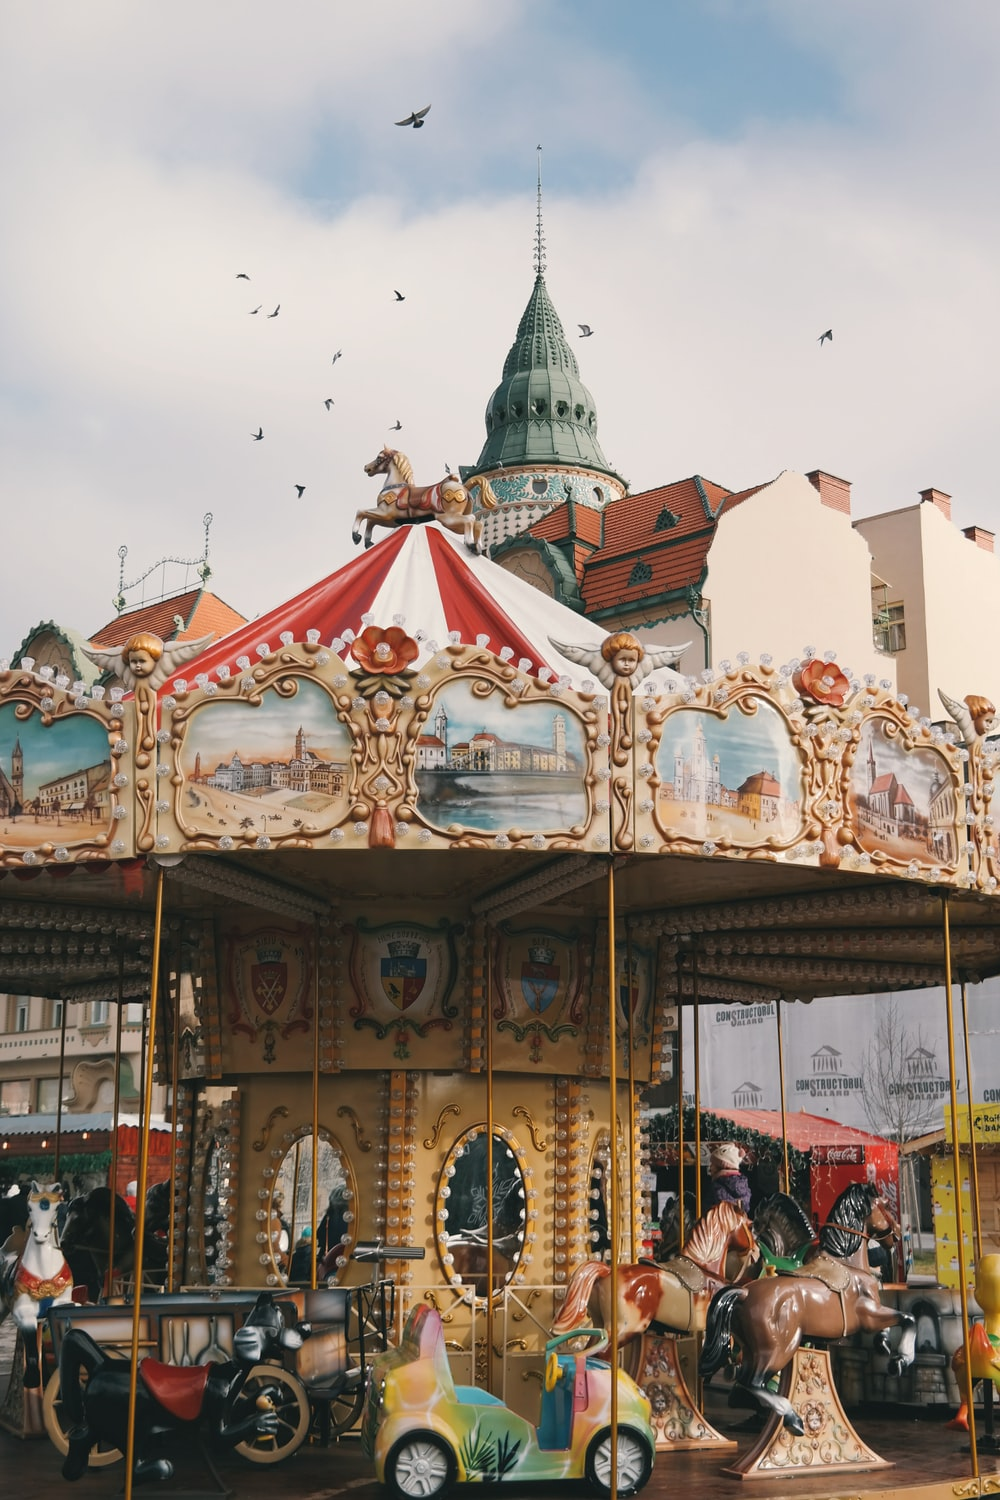 Best 100 Carousel Pictures Download Free Images On Unsplash